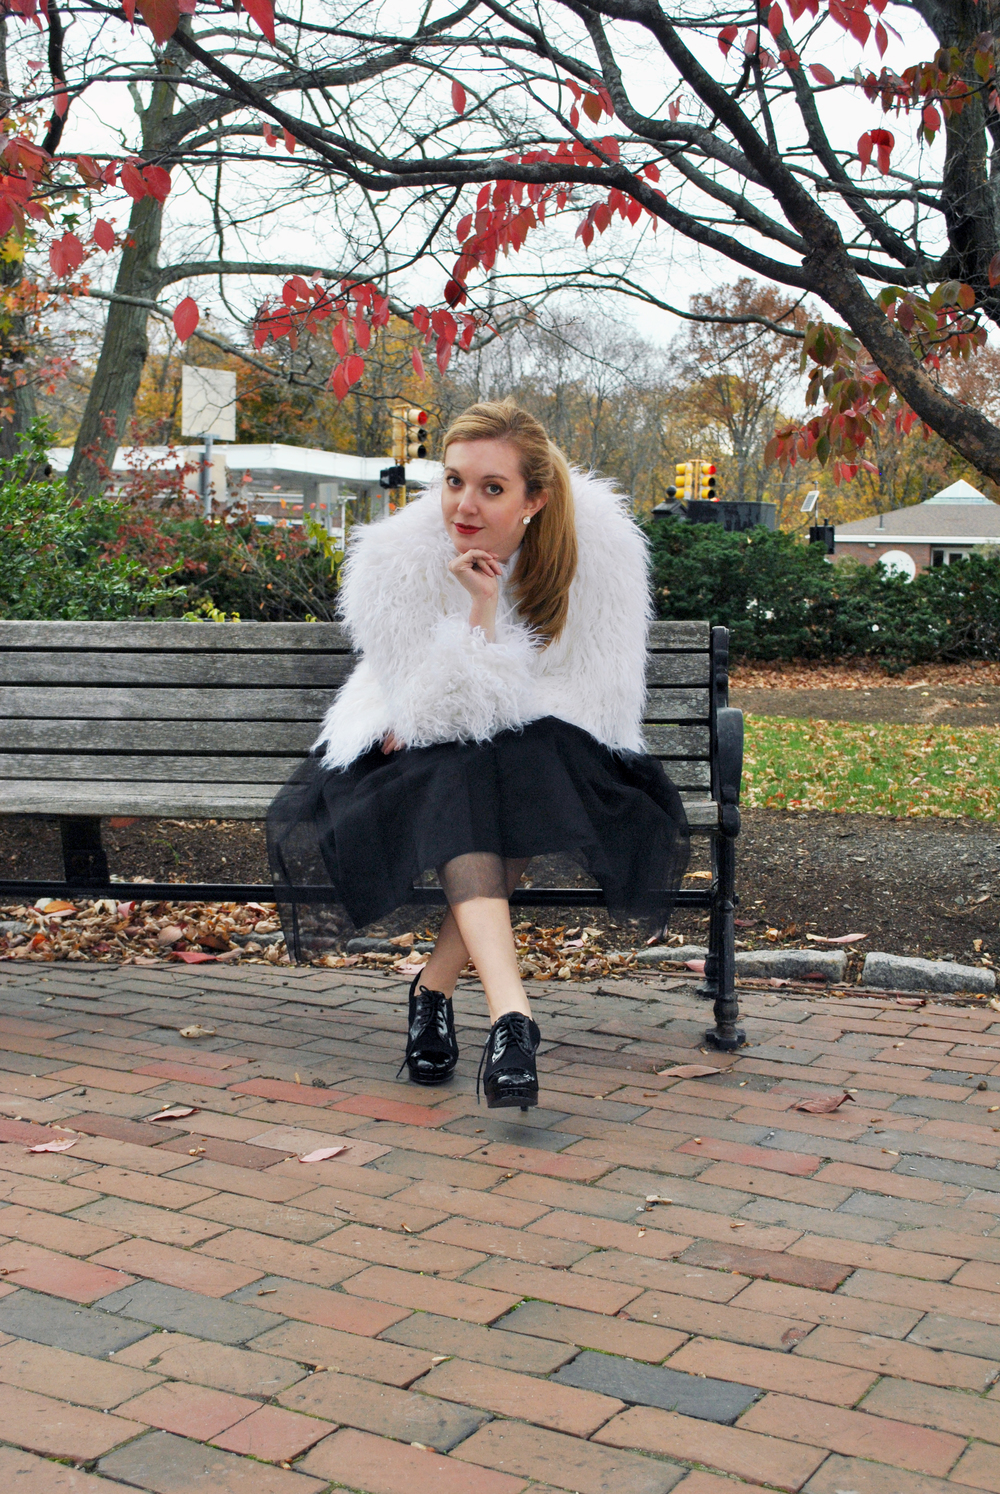 thoughtfulwish | scream queens fashion // scream queens outfit // star wars fashion // star wars outfit // faux fur // shag jacket // tulle skirt // boston fashion blogger // boston fashionista